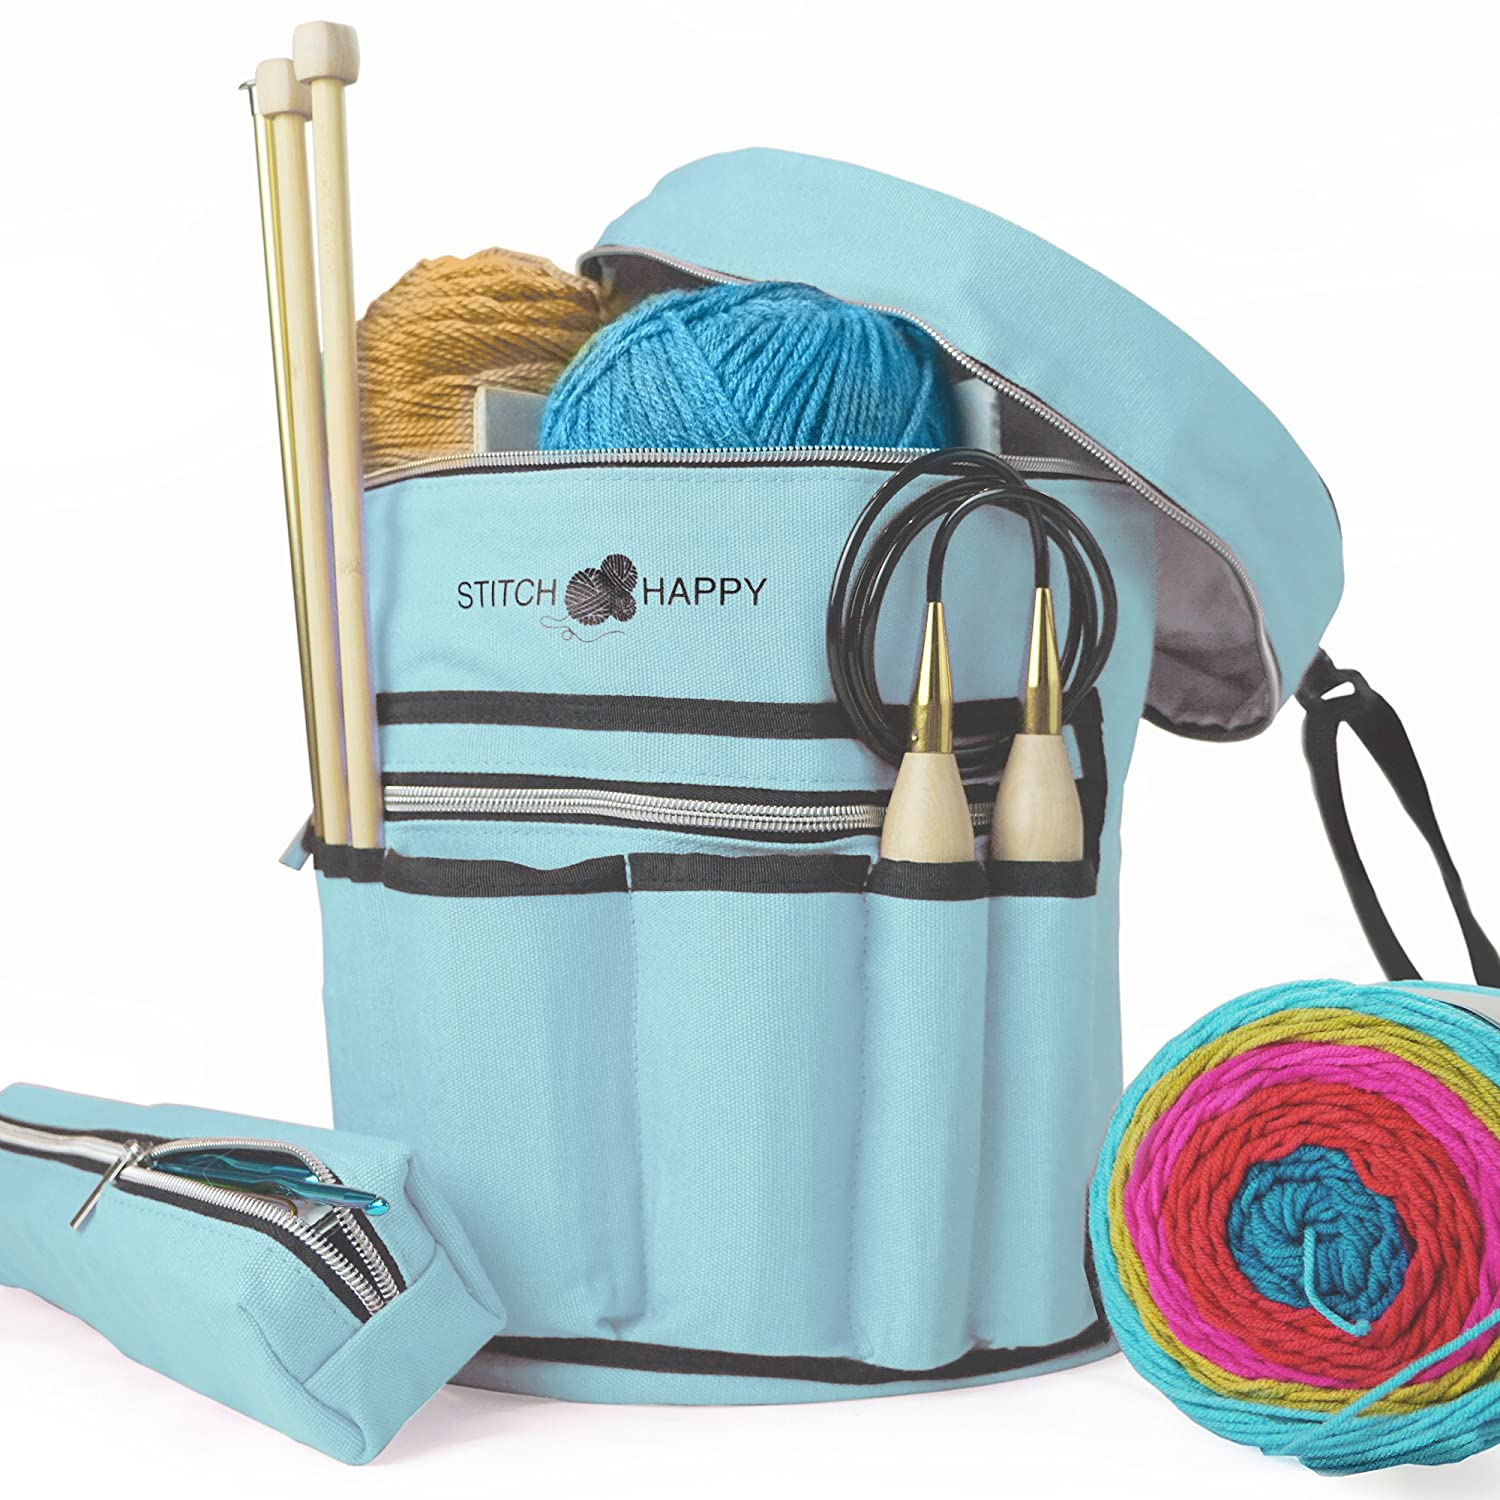 Stitch Happy Knitting Bag - Yarn Tote Organizer w/Tool Case, 7 Pockets + Divider for Extra Storage of Projects, Supplies & Crochet (Gray)